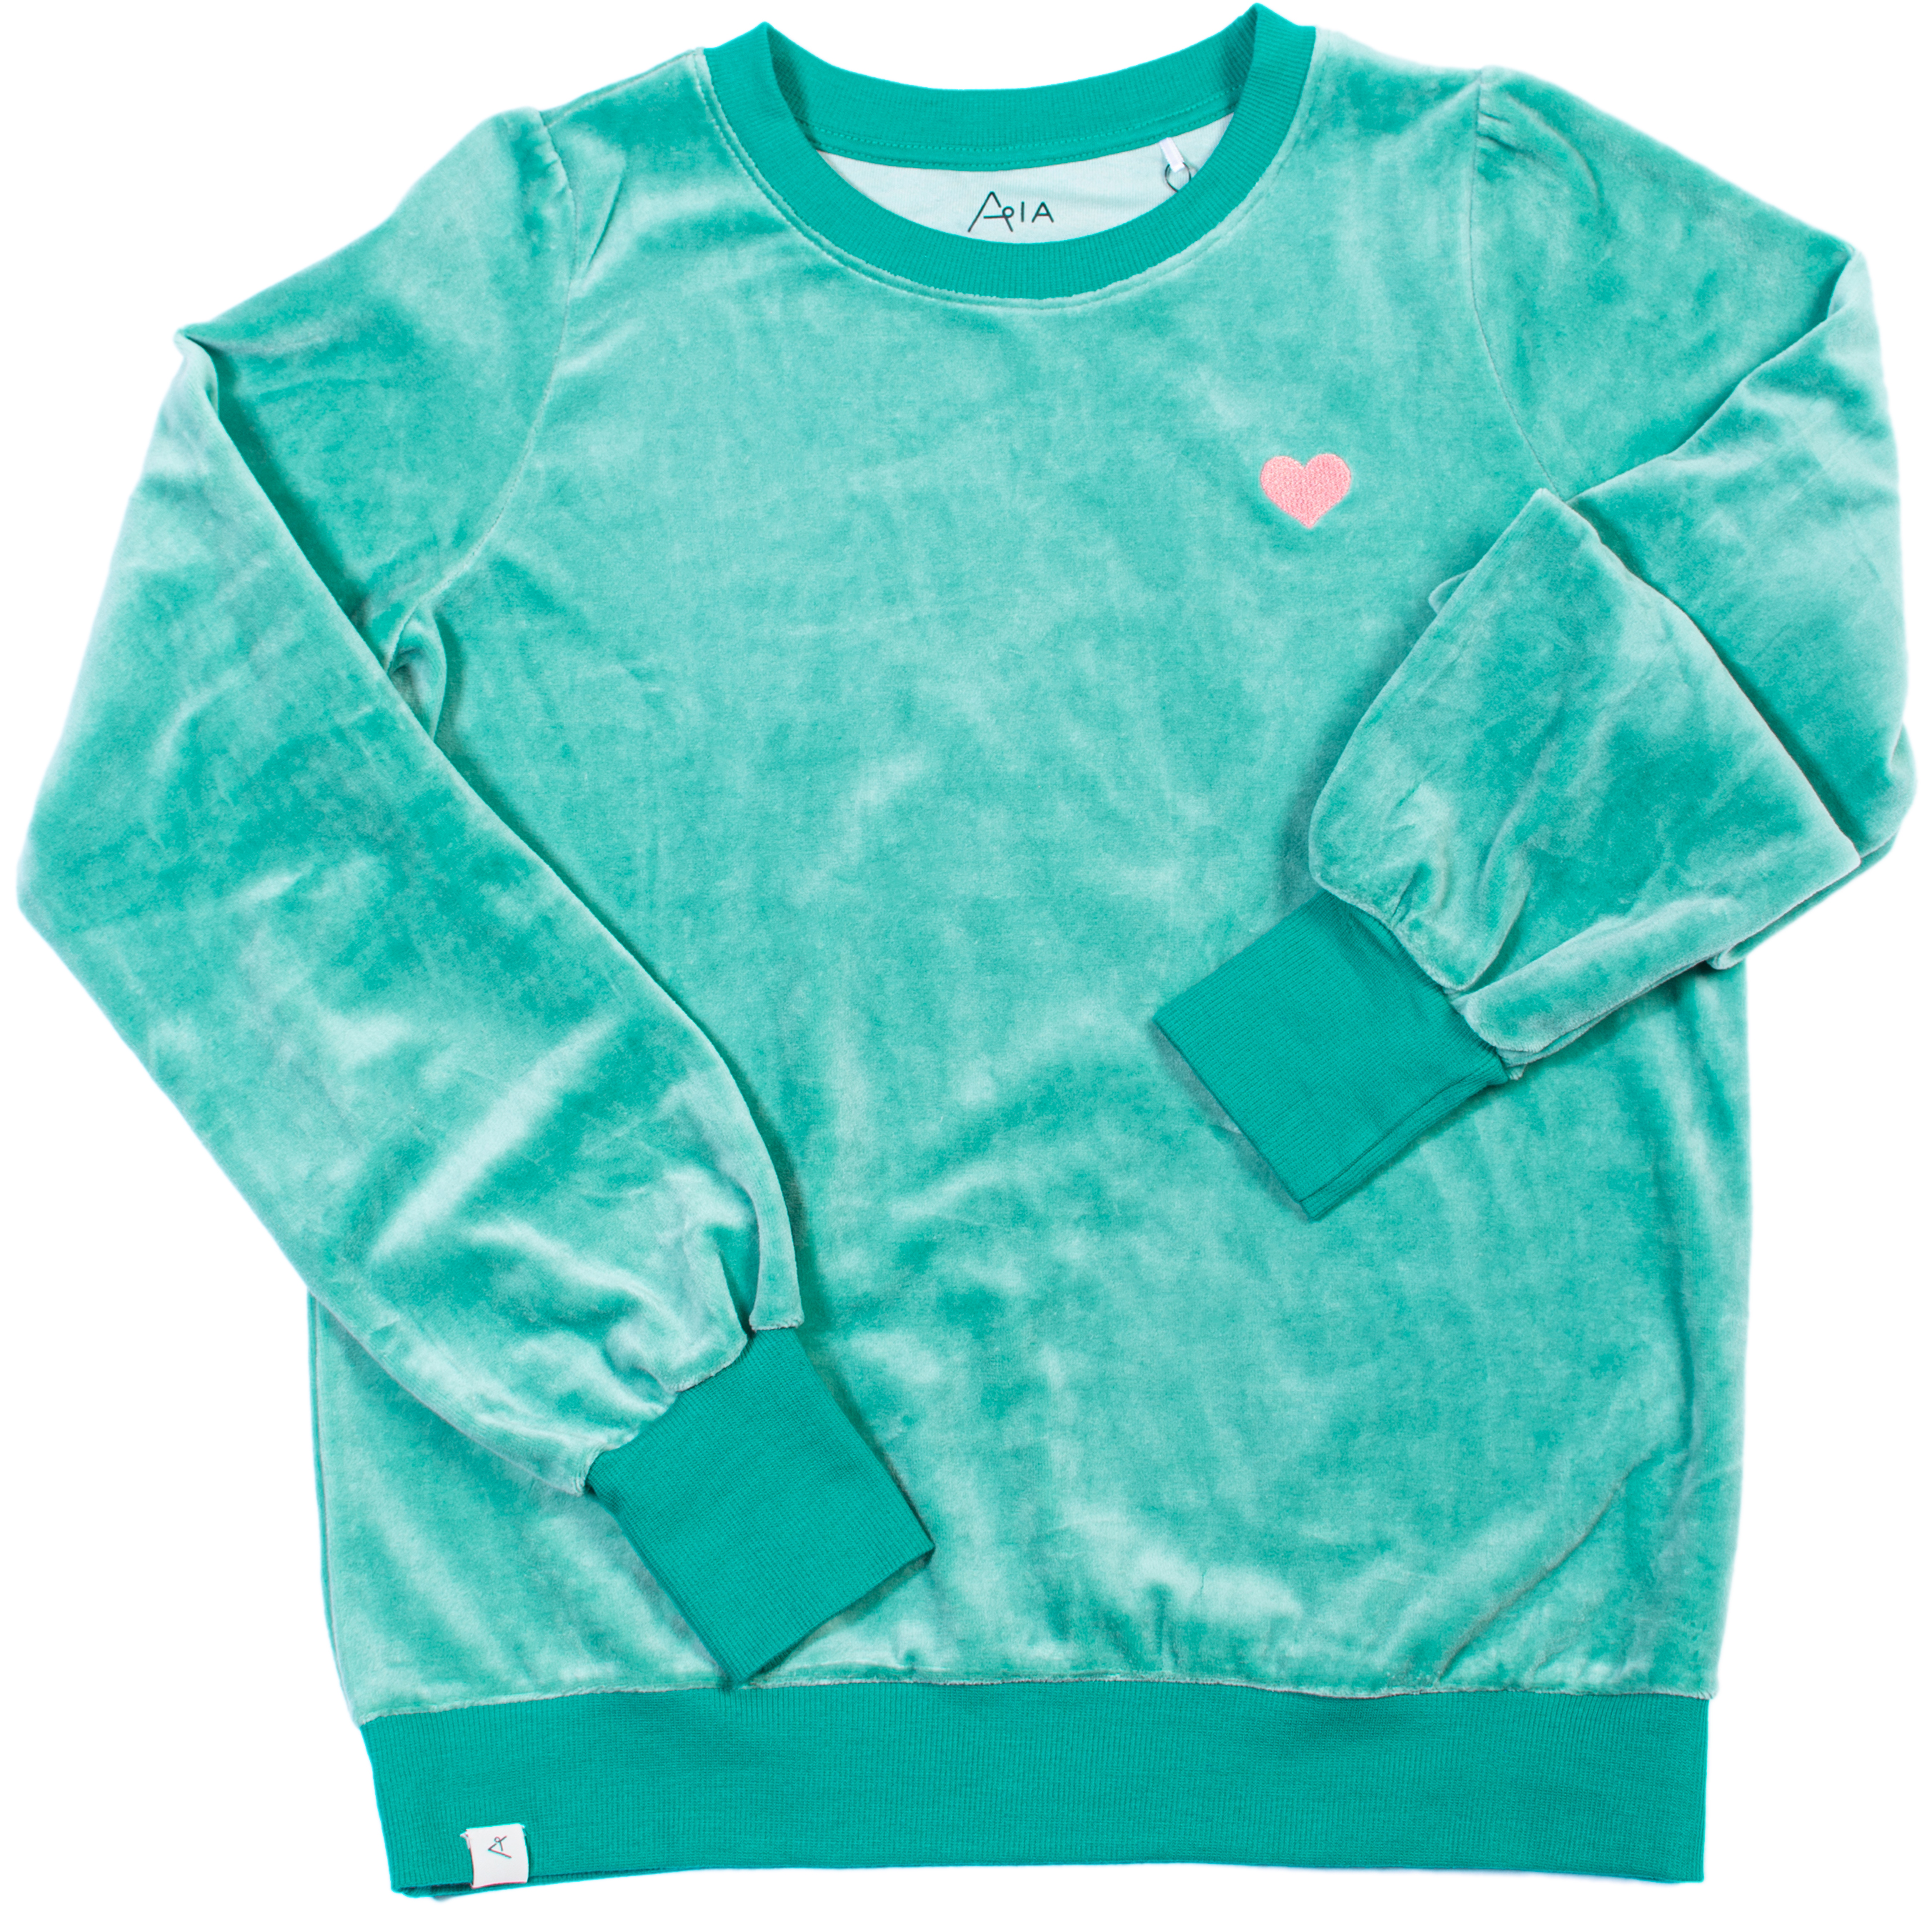 AIA by AlbaBaby Damen Sweatshirt For a Cozy Day creme de menthe